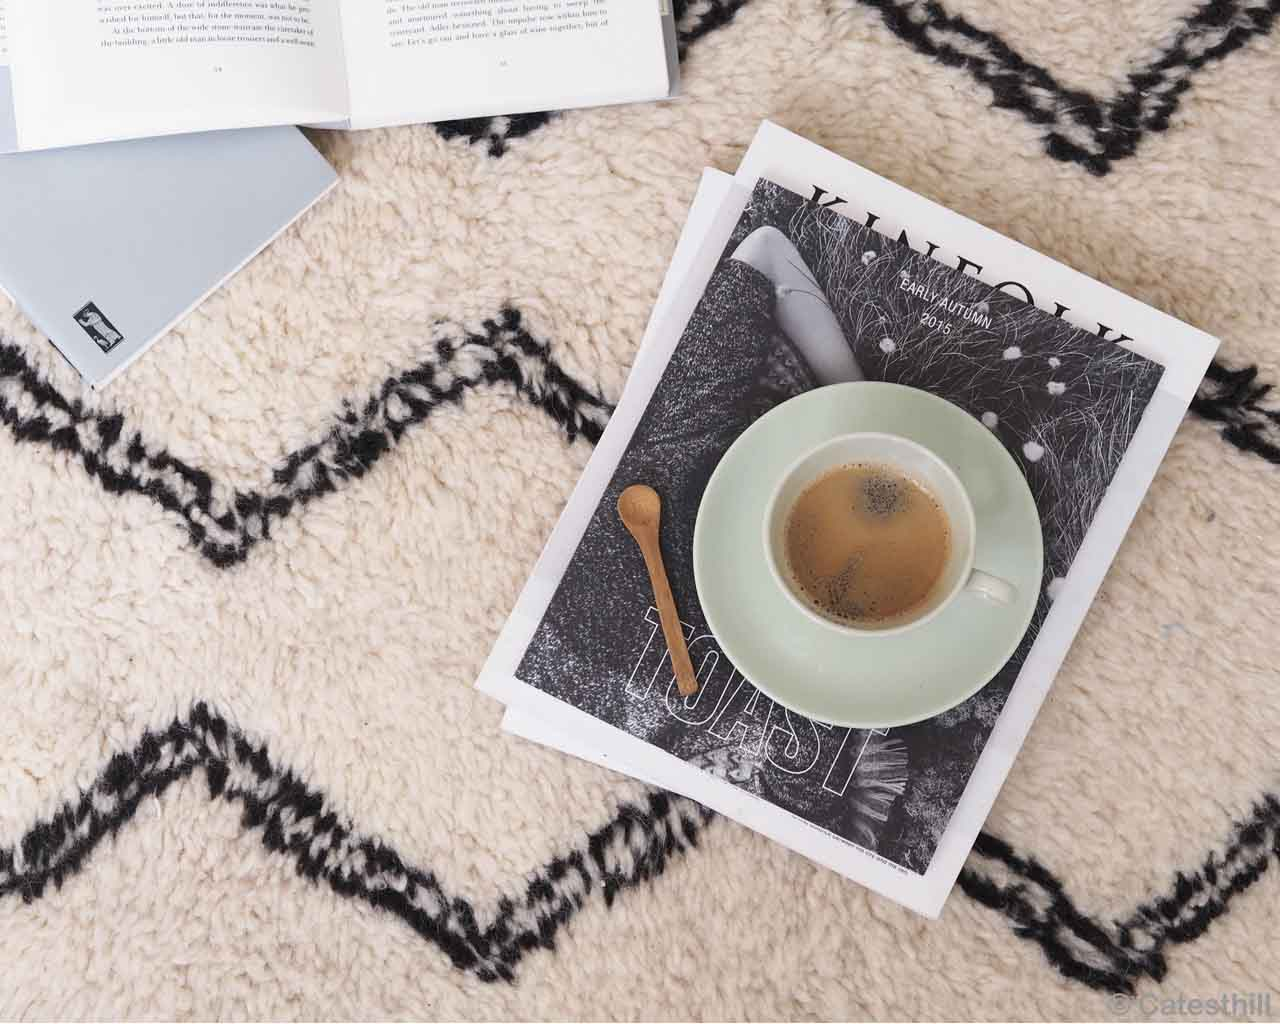 spoon tea and books made by moroccan kitchen rugs